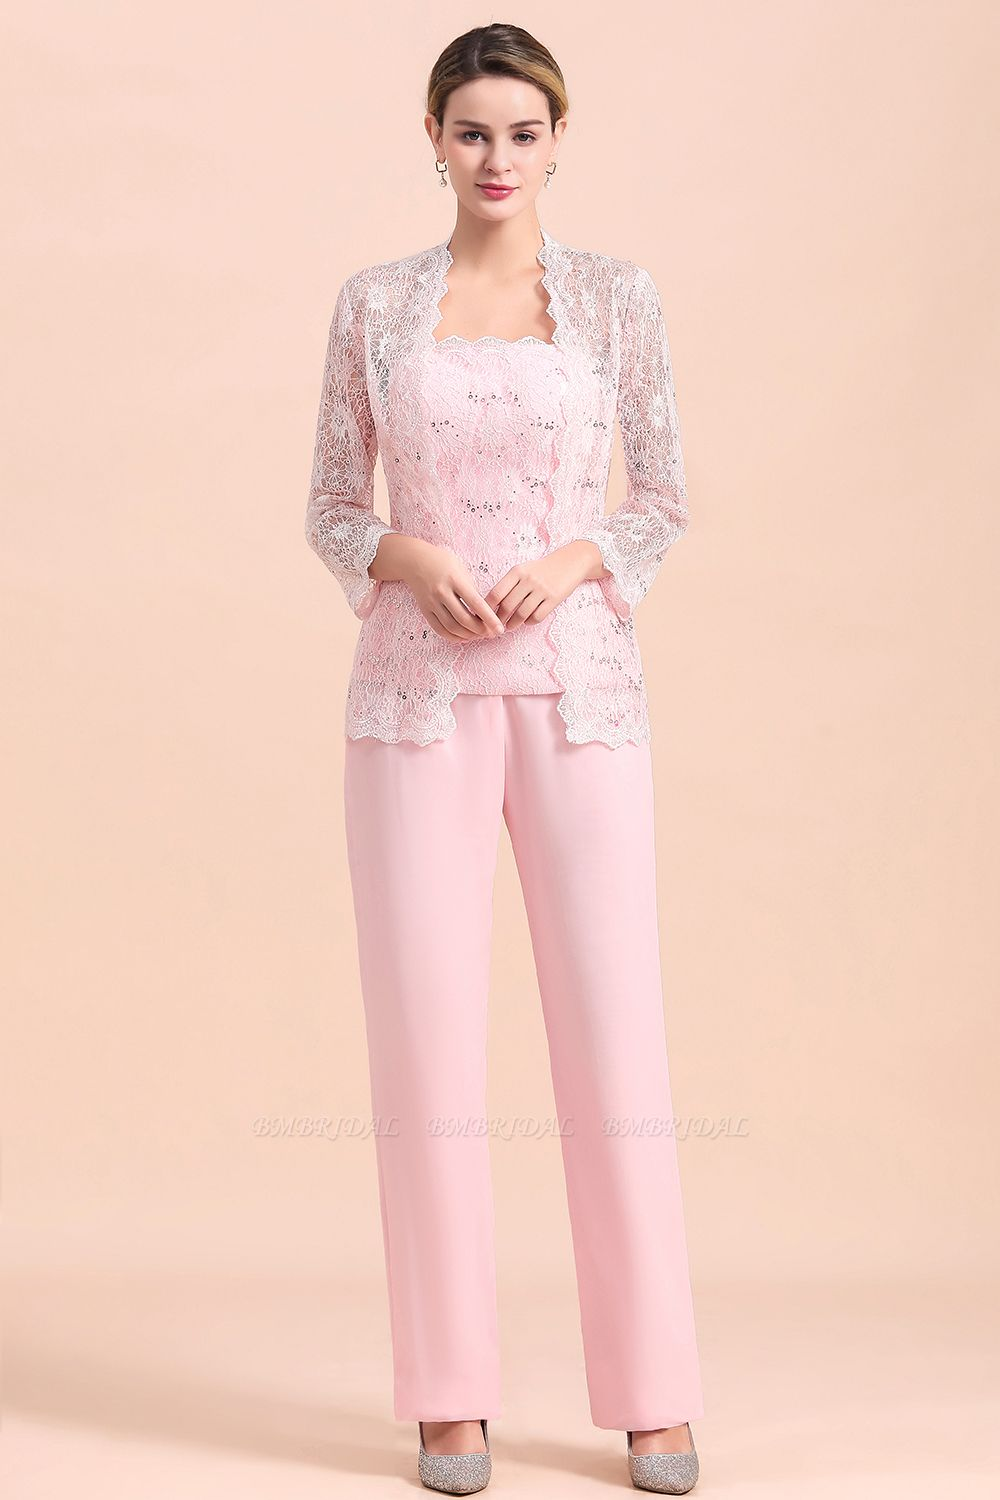 Elegant Strapless Appliques Mother of Bride Jumpsuit with Long Sleeves Wraps